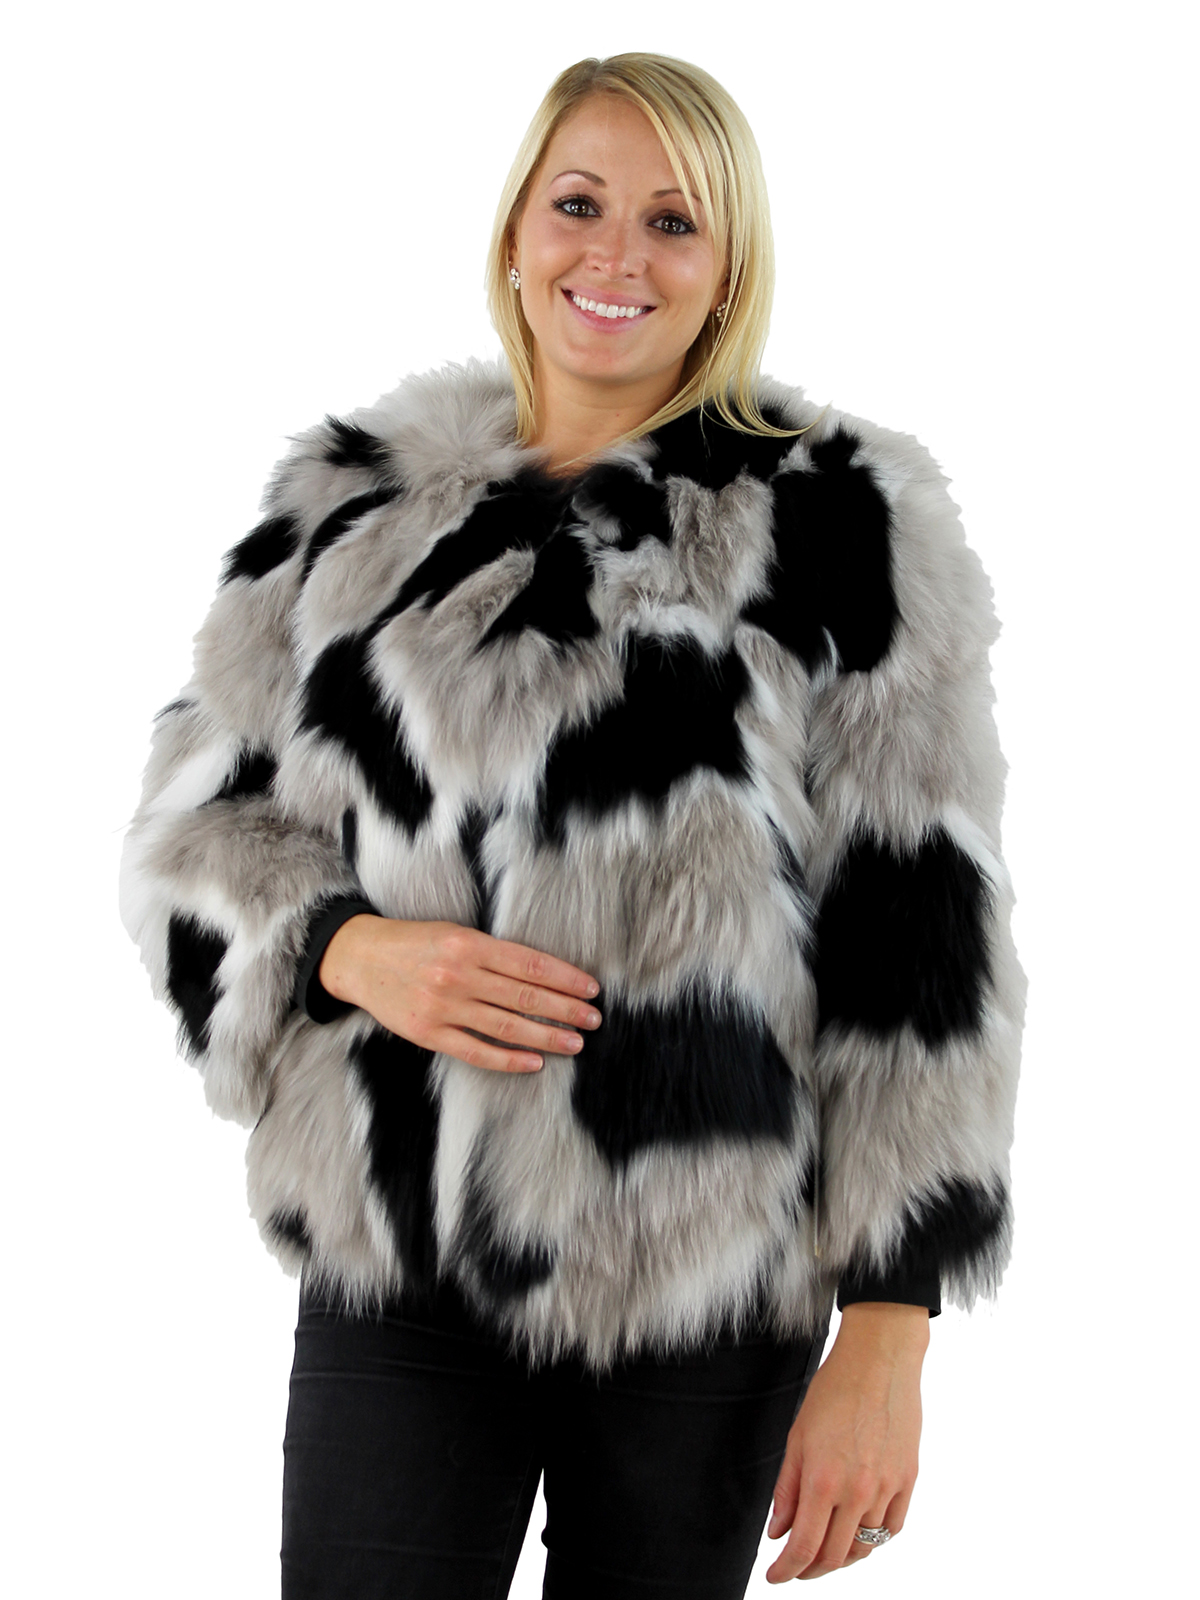 Fur Womens Black Tan And White Fox Fur Jacket Women S Medium Day Furs